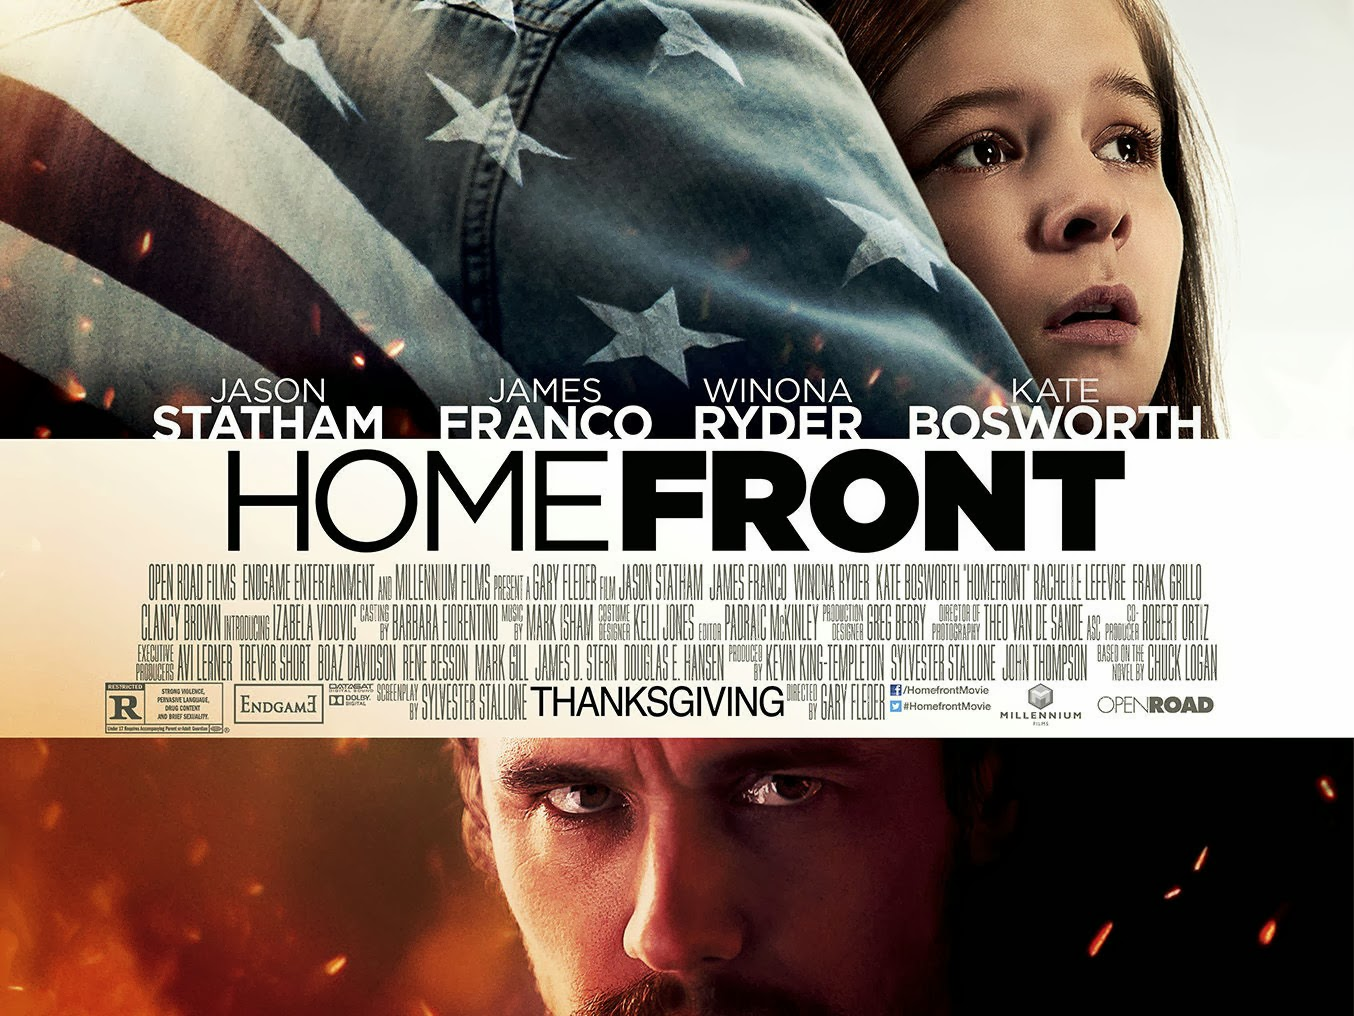 Homefront 2013 Full Movie Free Download